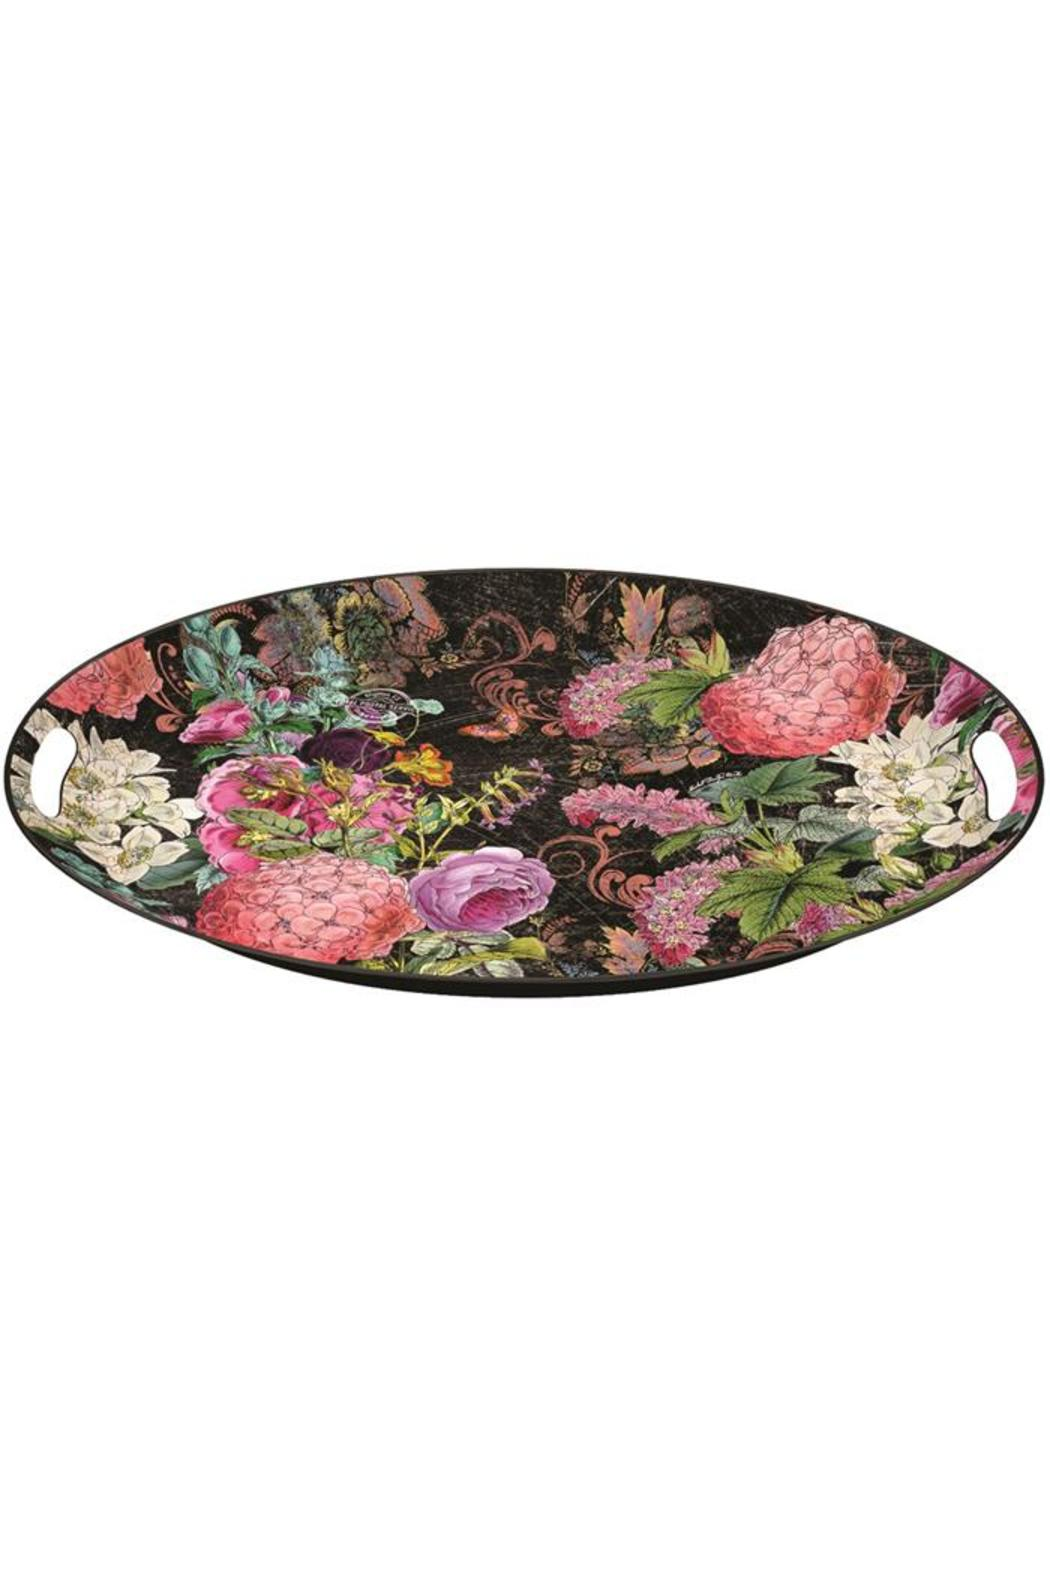 hair styles oval michel design works botanical garden tray from boulder by 6175